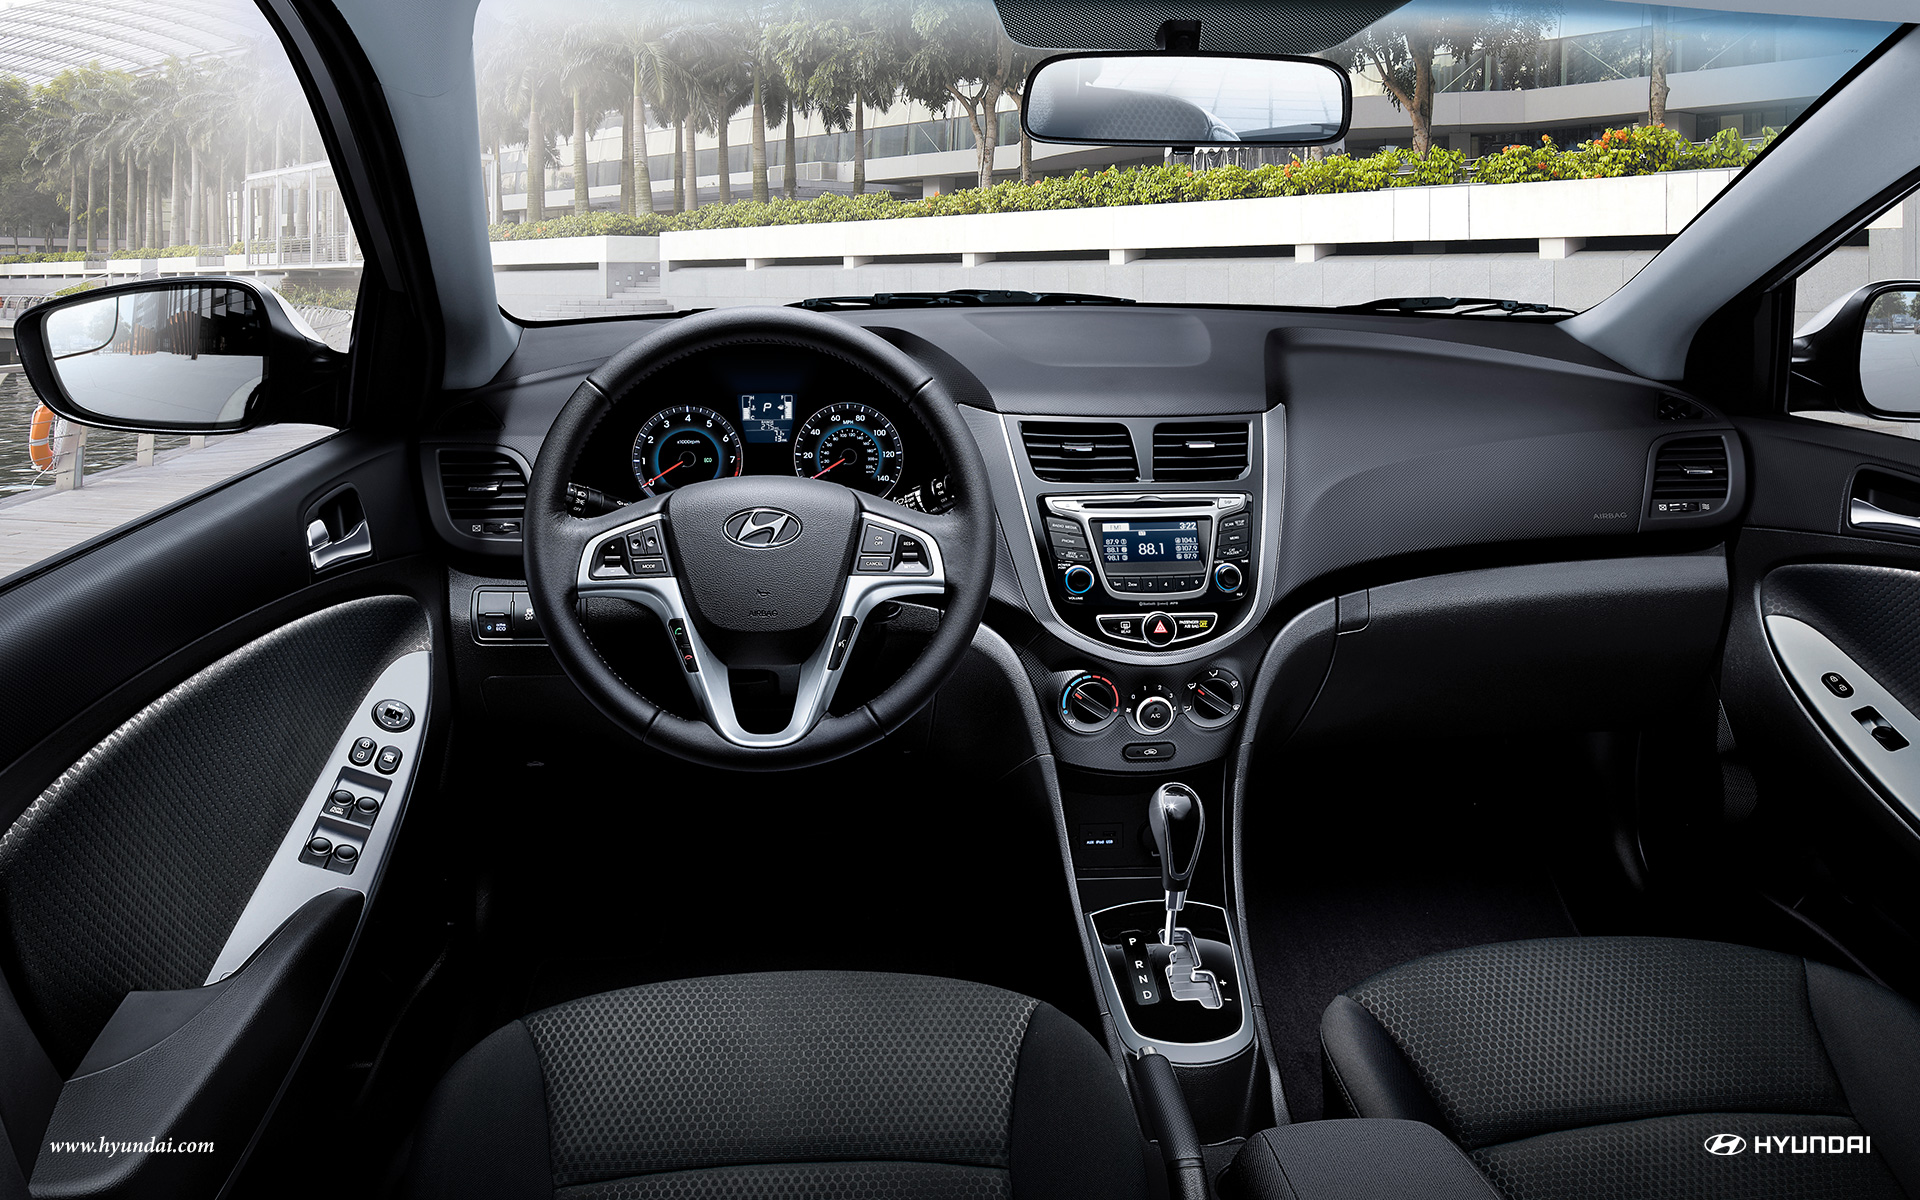 2017 Hyundai Accent Interior